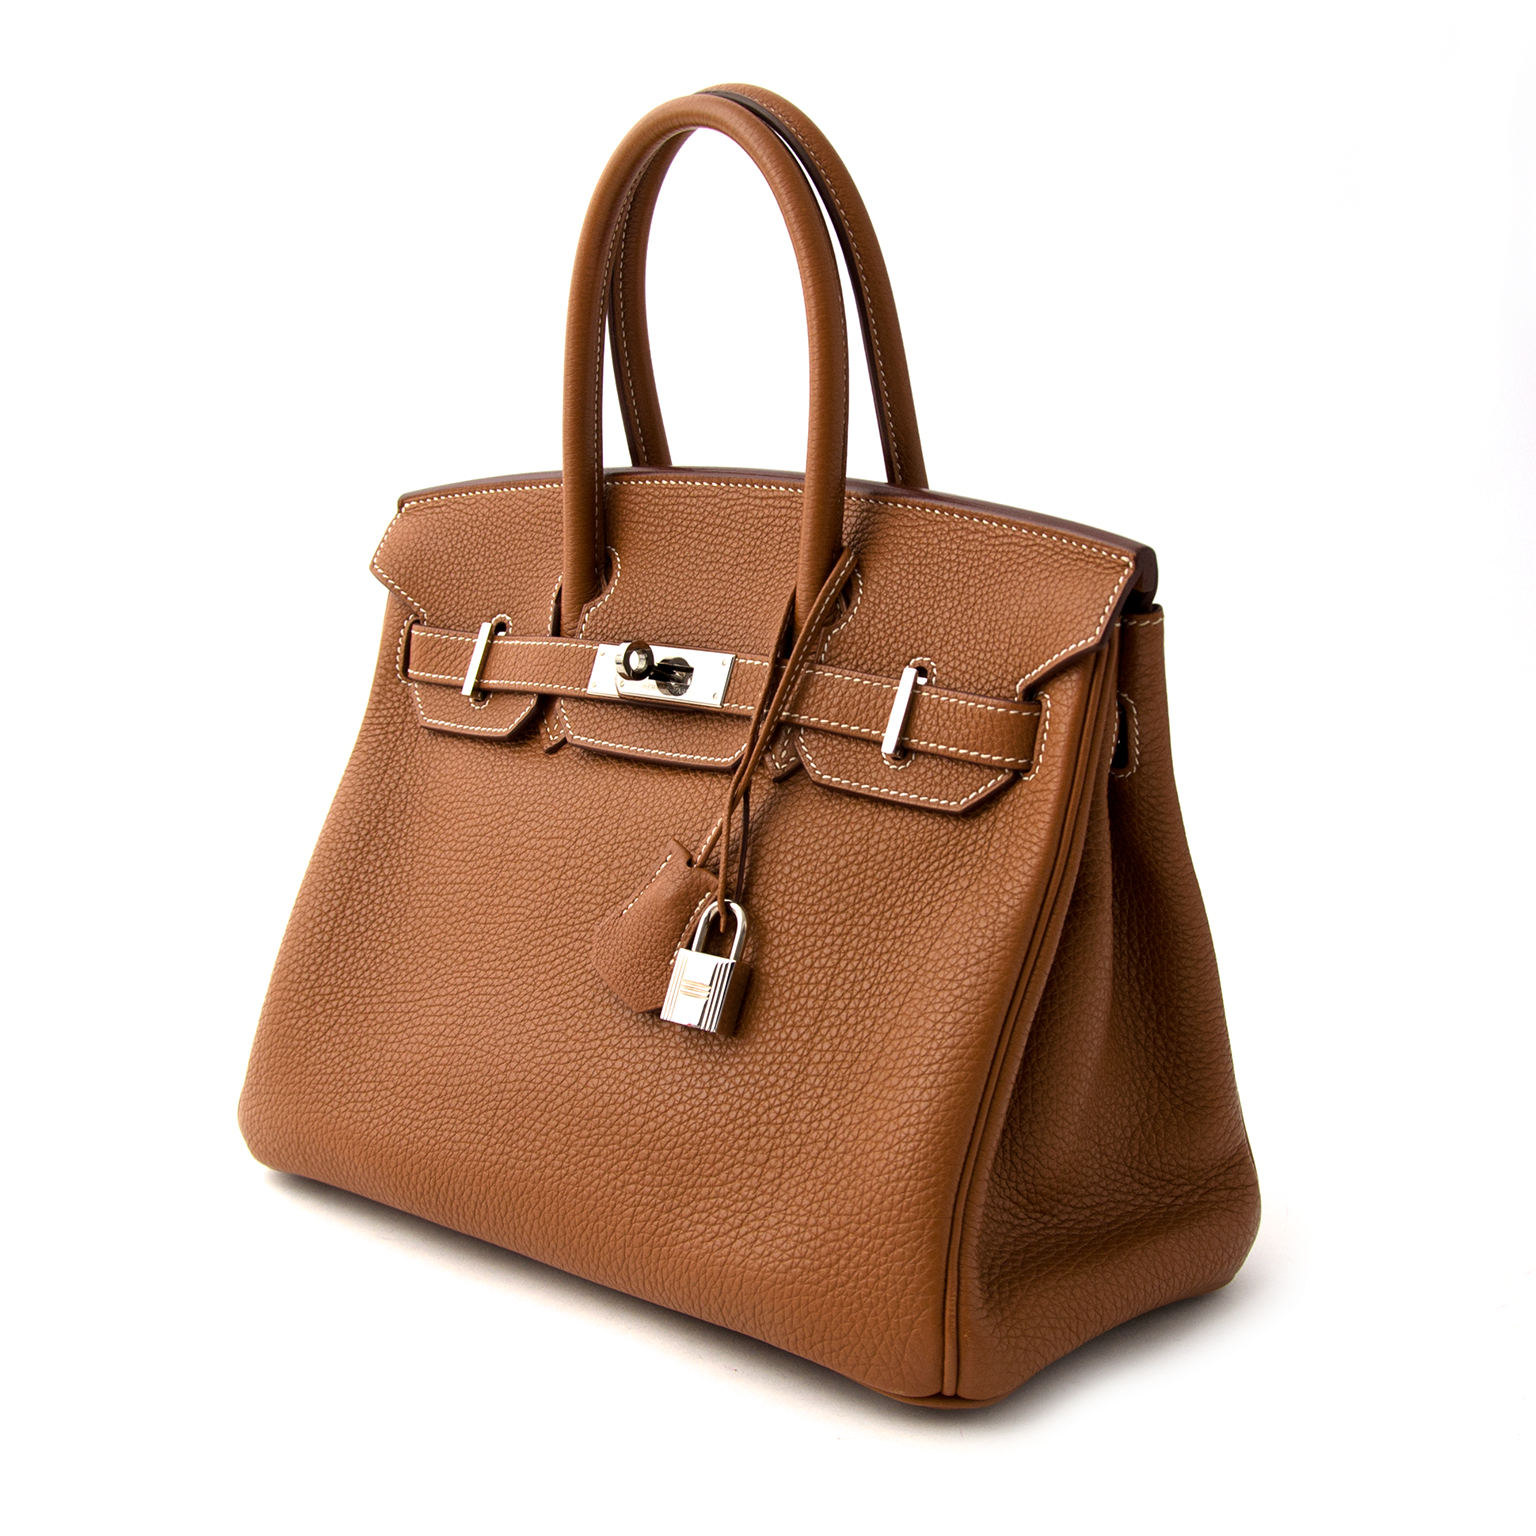 Buy safe and secure online at labellov.com for the best price. Hermes birkin 30cm gold phw